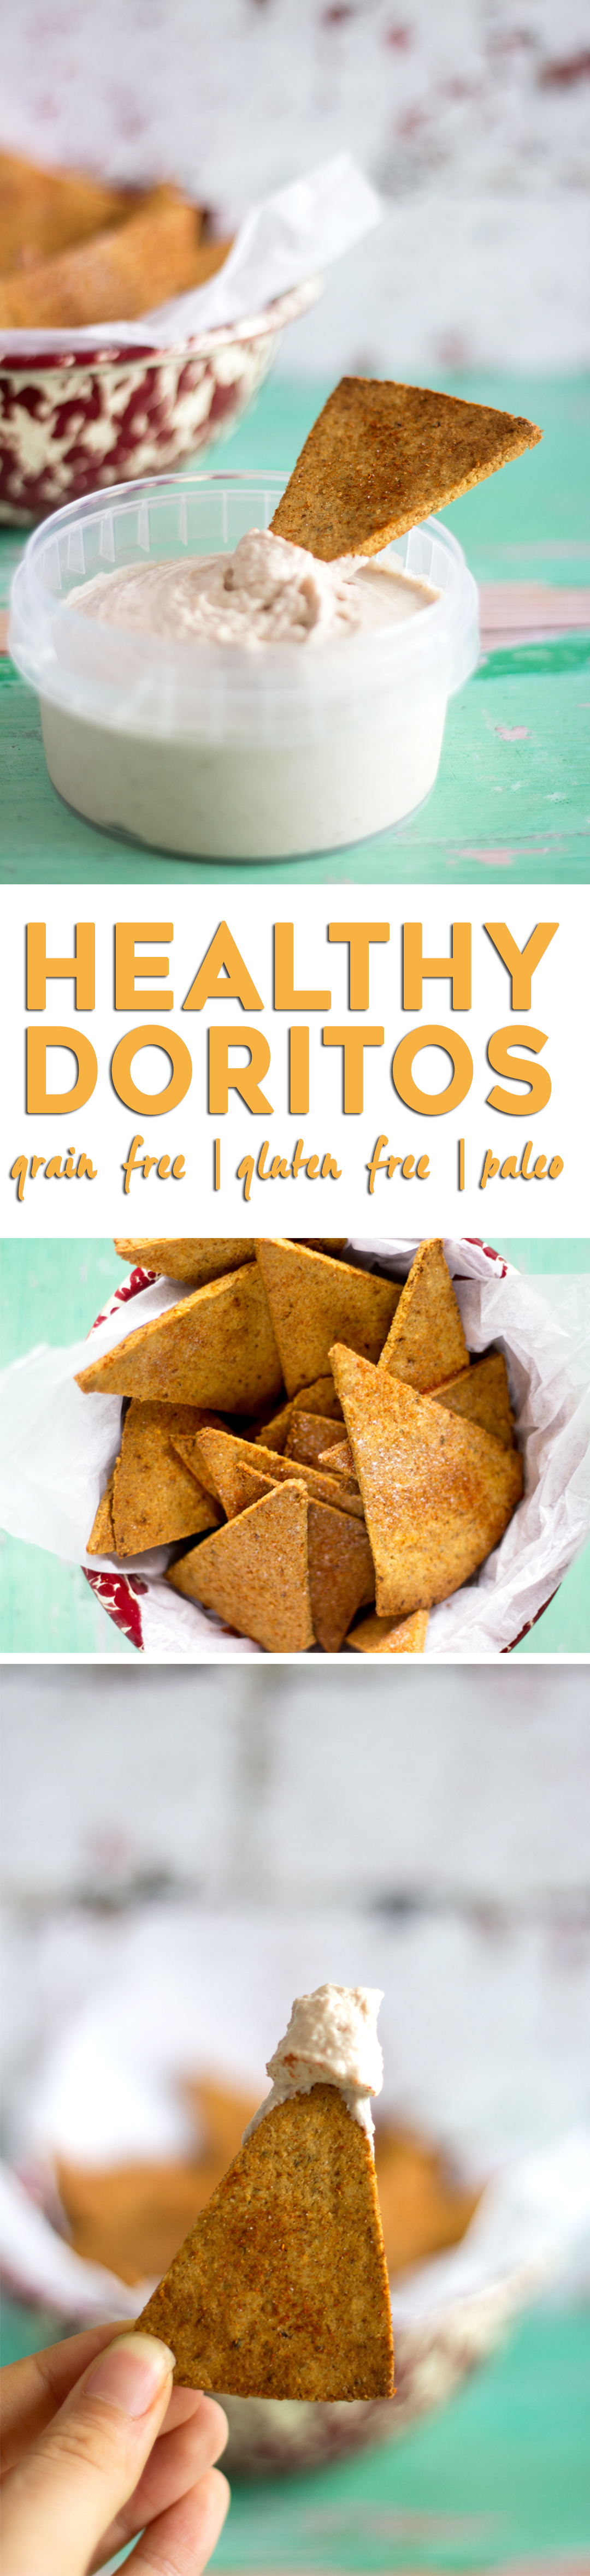 Low Carb & Oven Baked Tortilla Chips - Crispy paleo tortilla, perfect for dipping, like healthy Doritos!